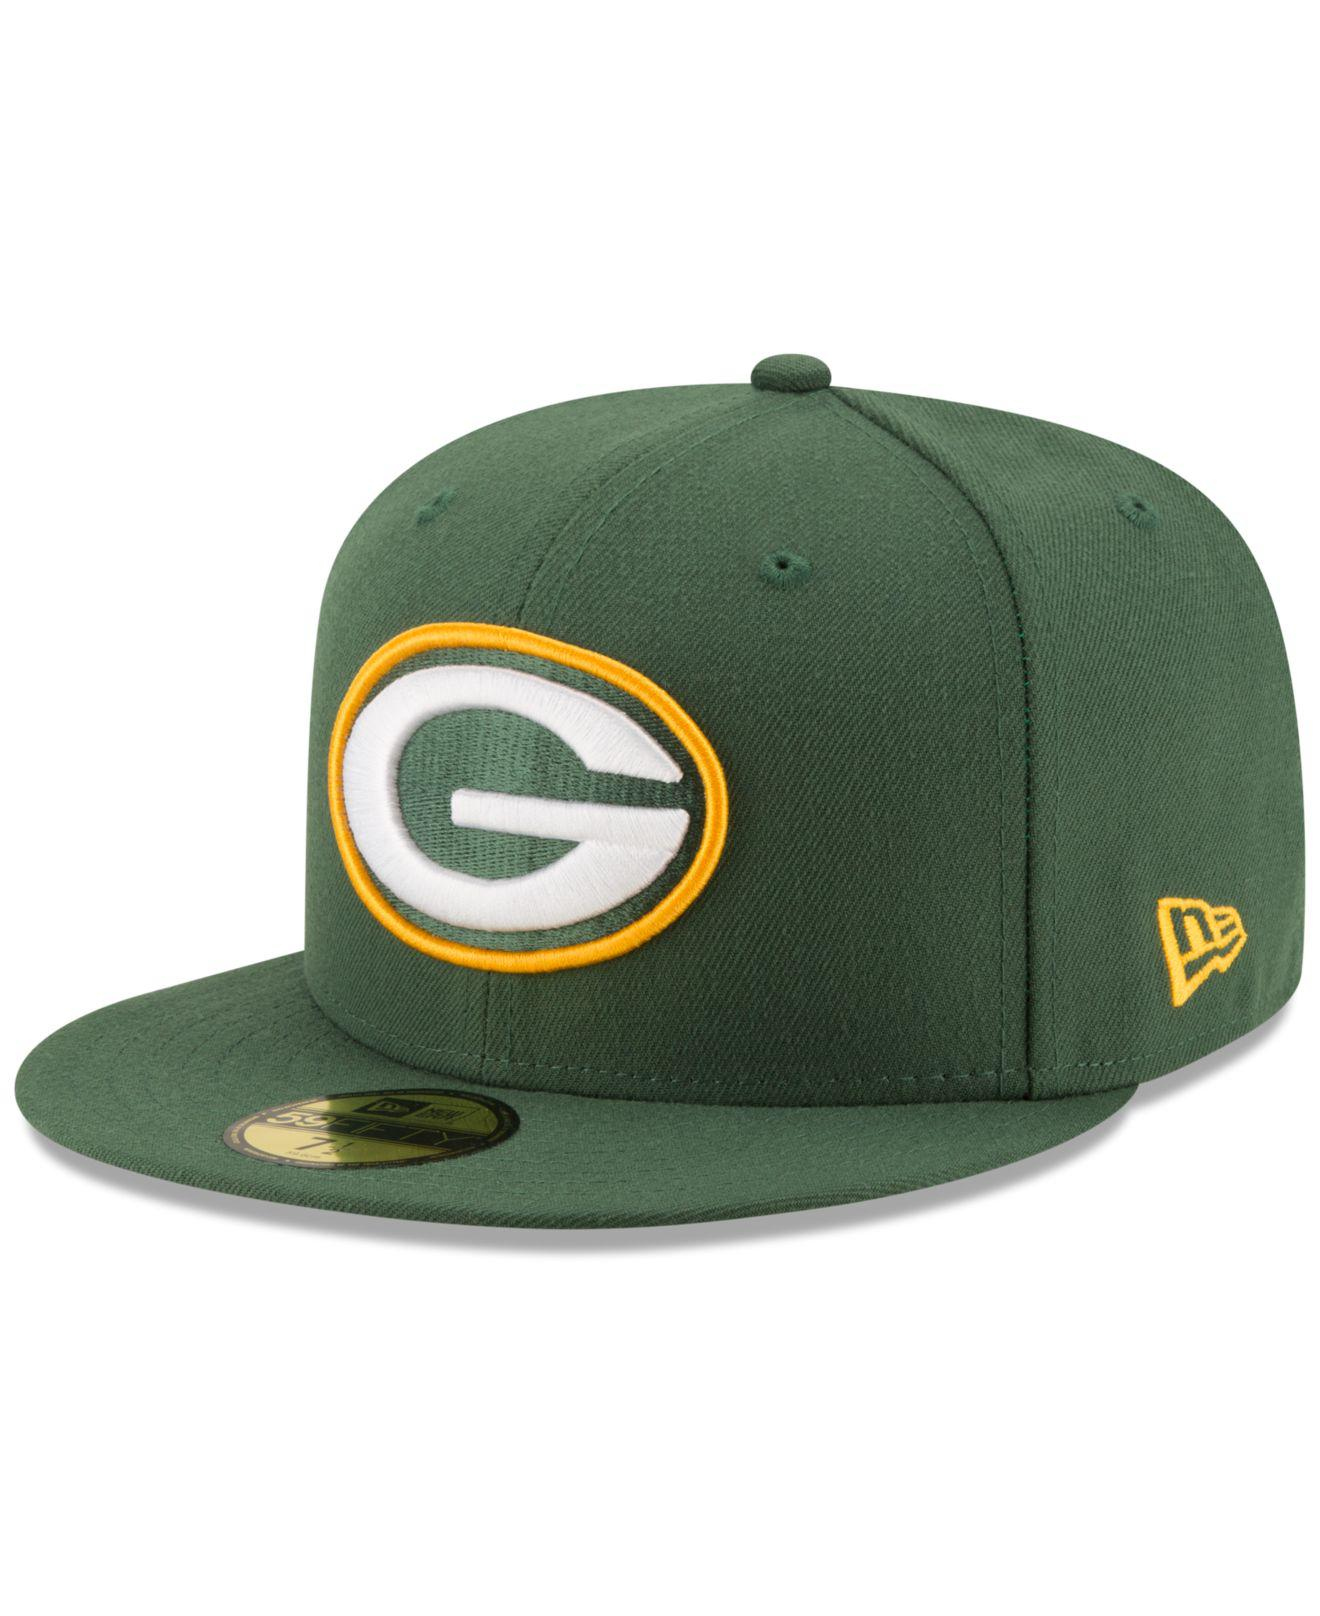 Lyst - KTZ Green Bay Packers Team Basic 59fifty Cap in Green for Men 5f7686070